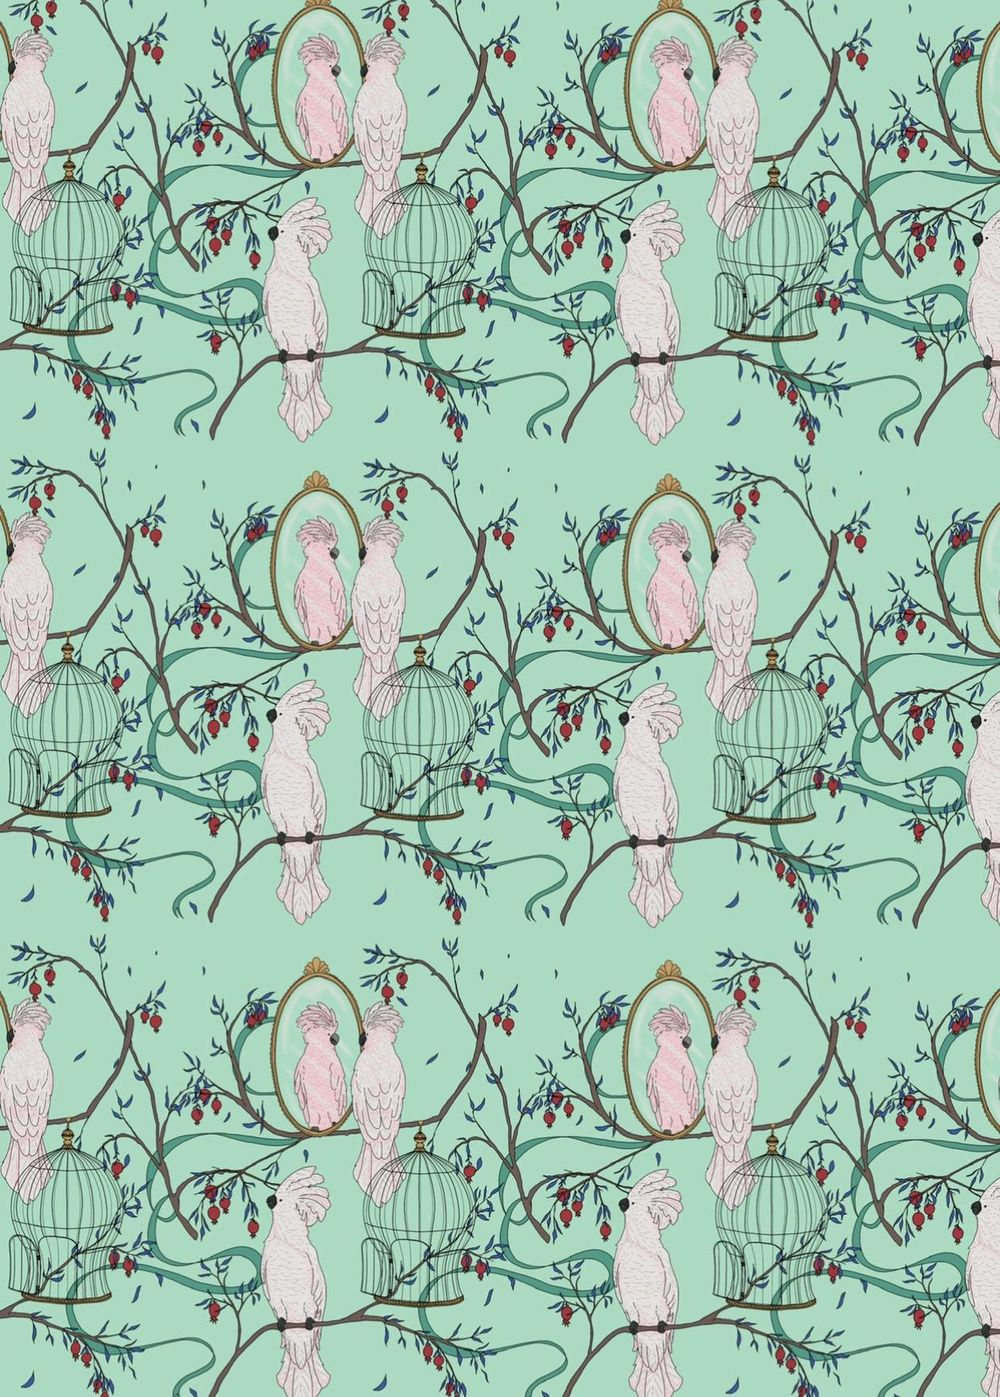 Cockatoo pattern - image 2 - student project